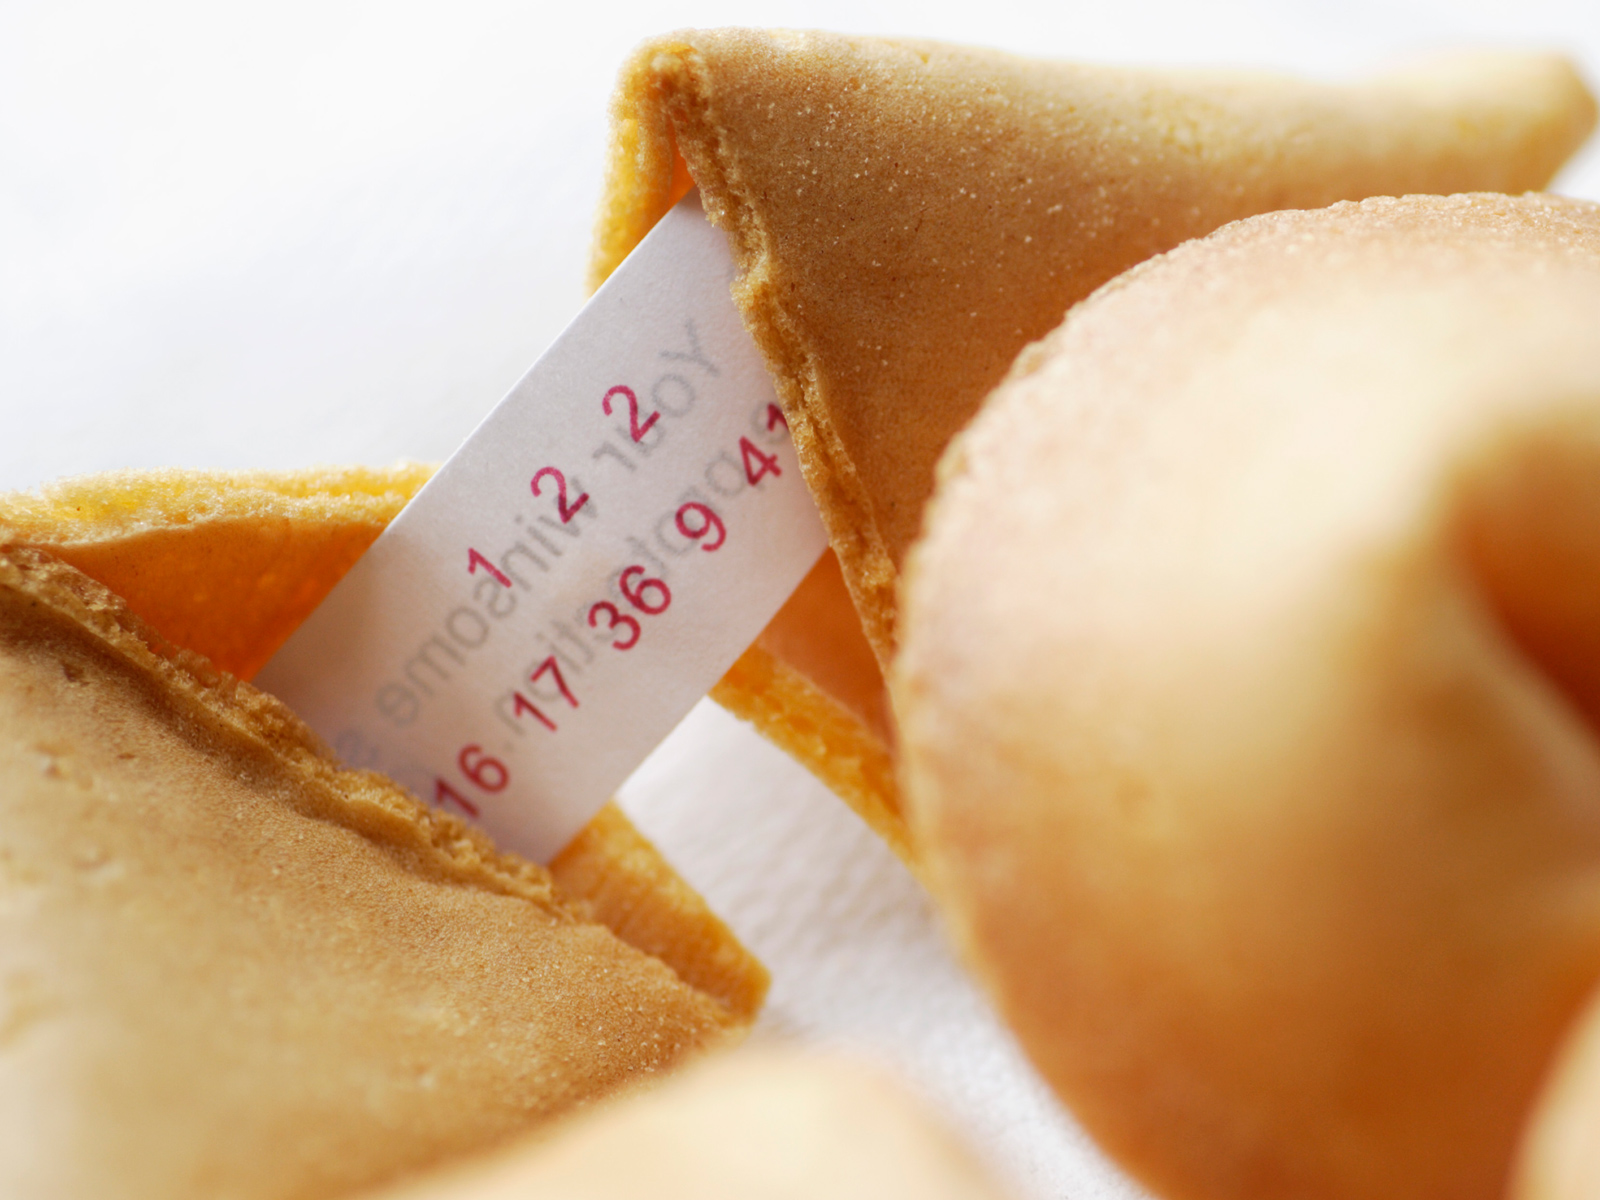 fortune-cookie-lottery-FT-BLOG0619.jpg